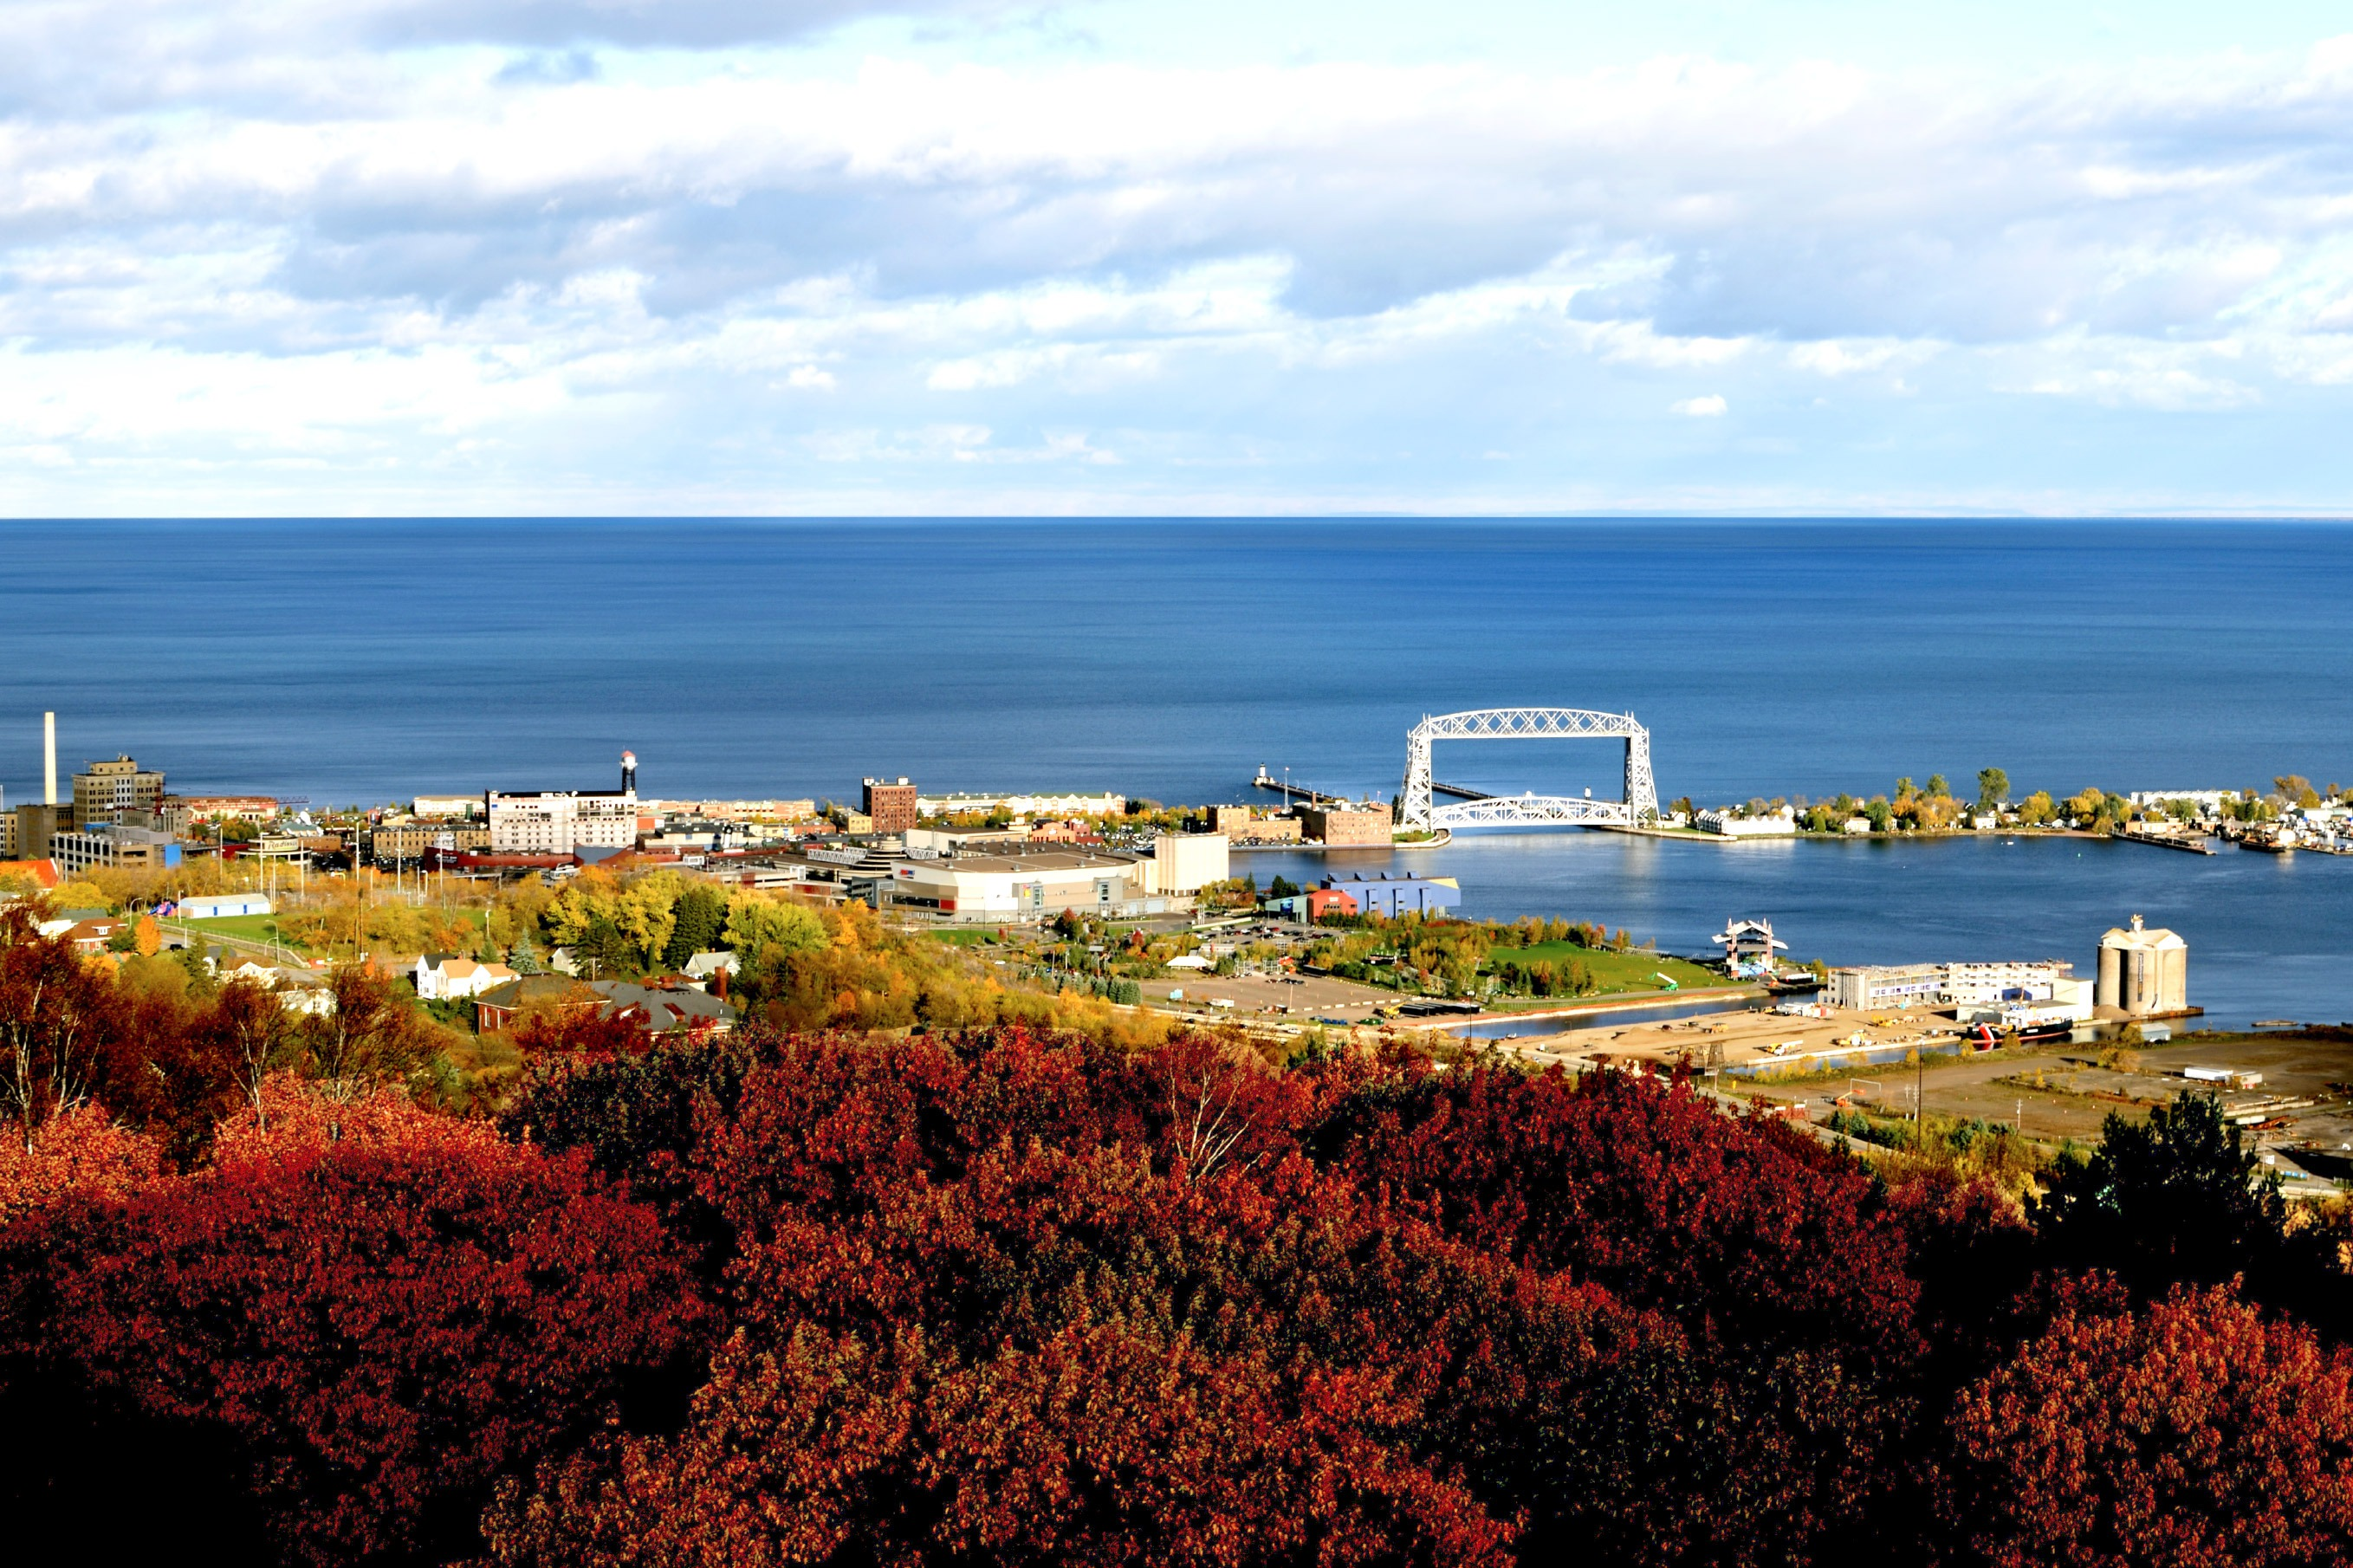 View of the Duluth Aerial Lift Bridge in fall